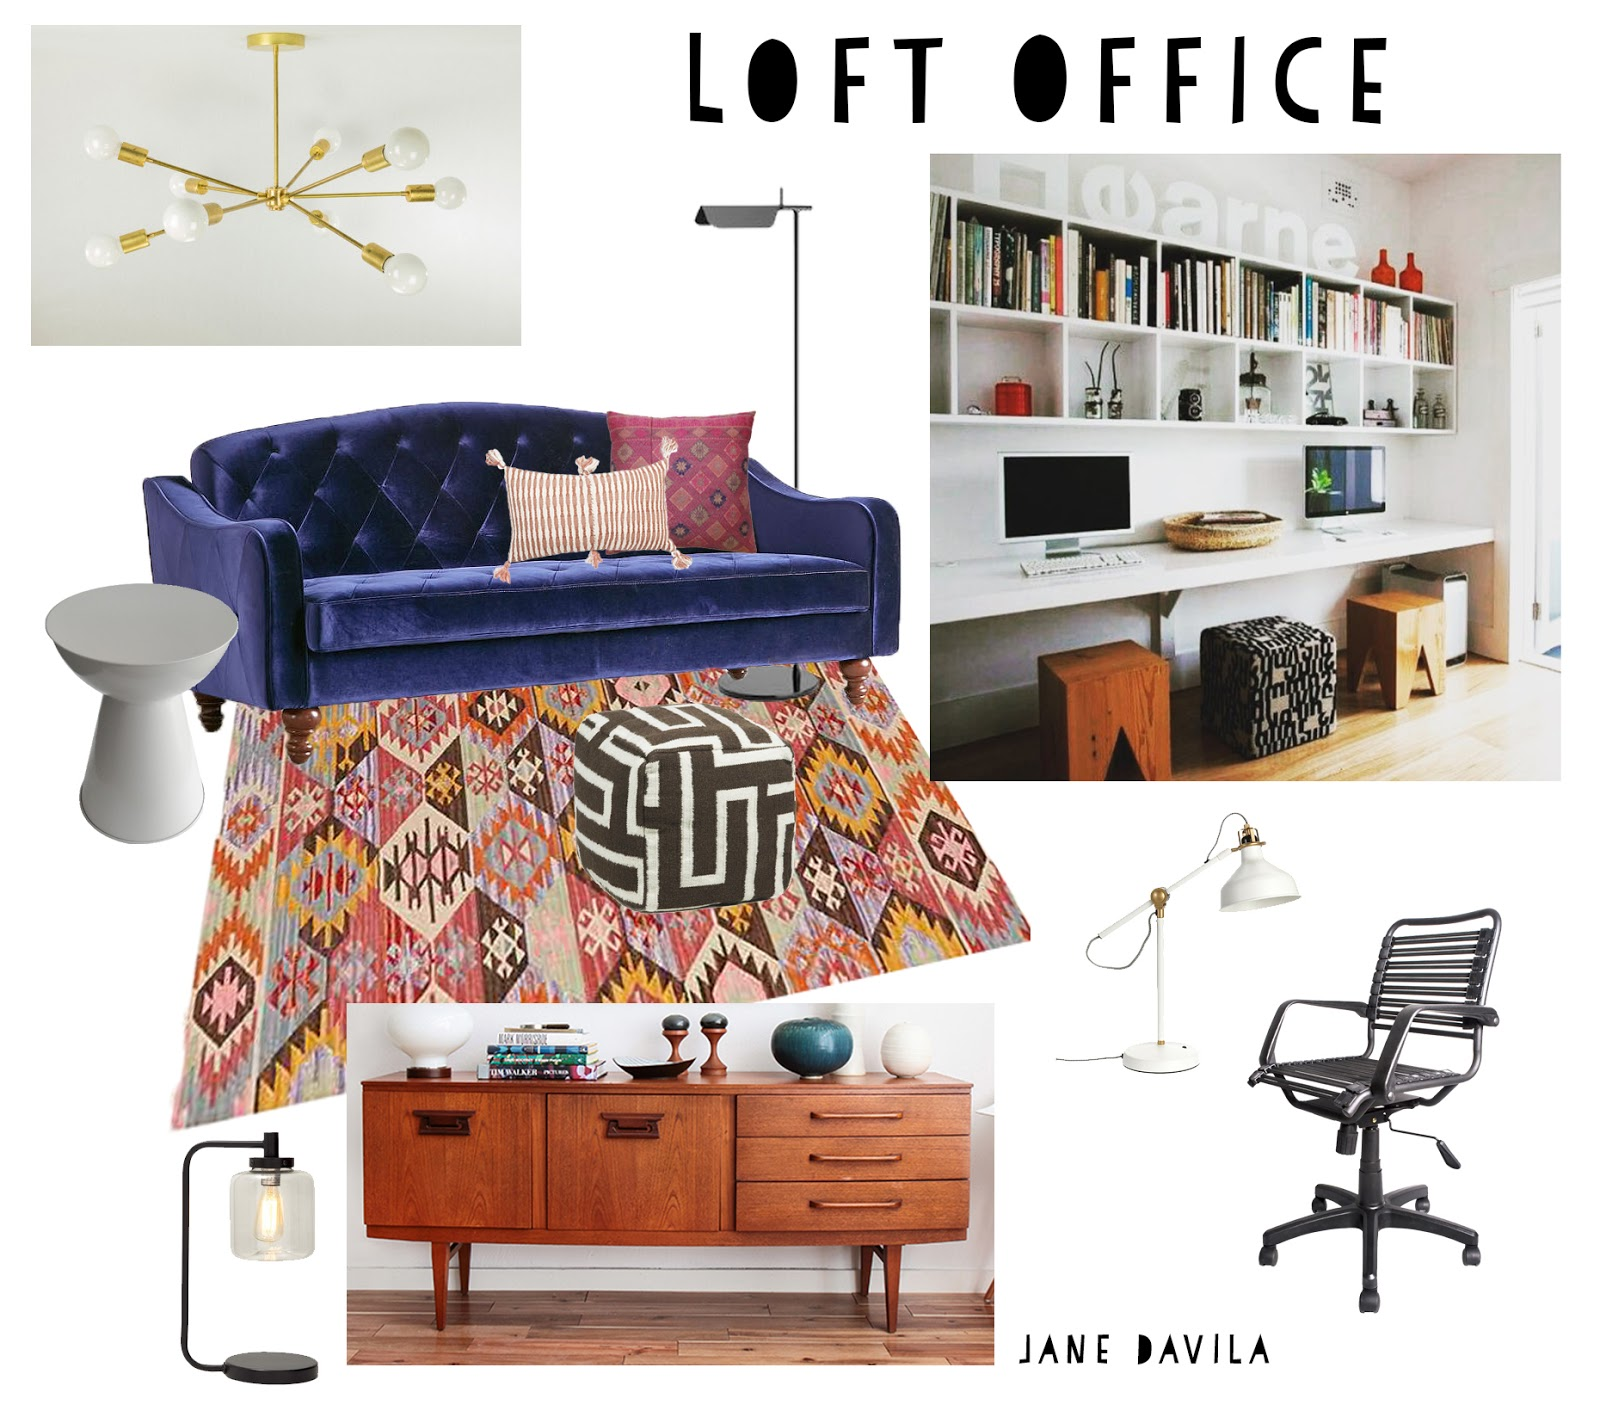 Chary sprouts loft office design for Loft office design